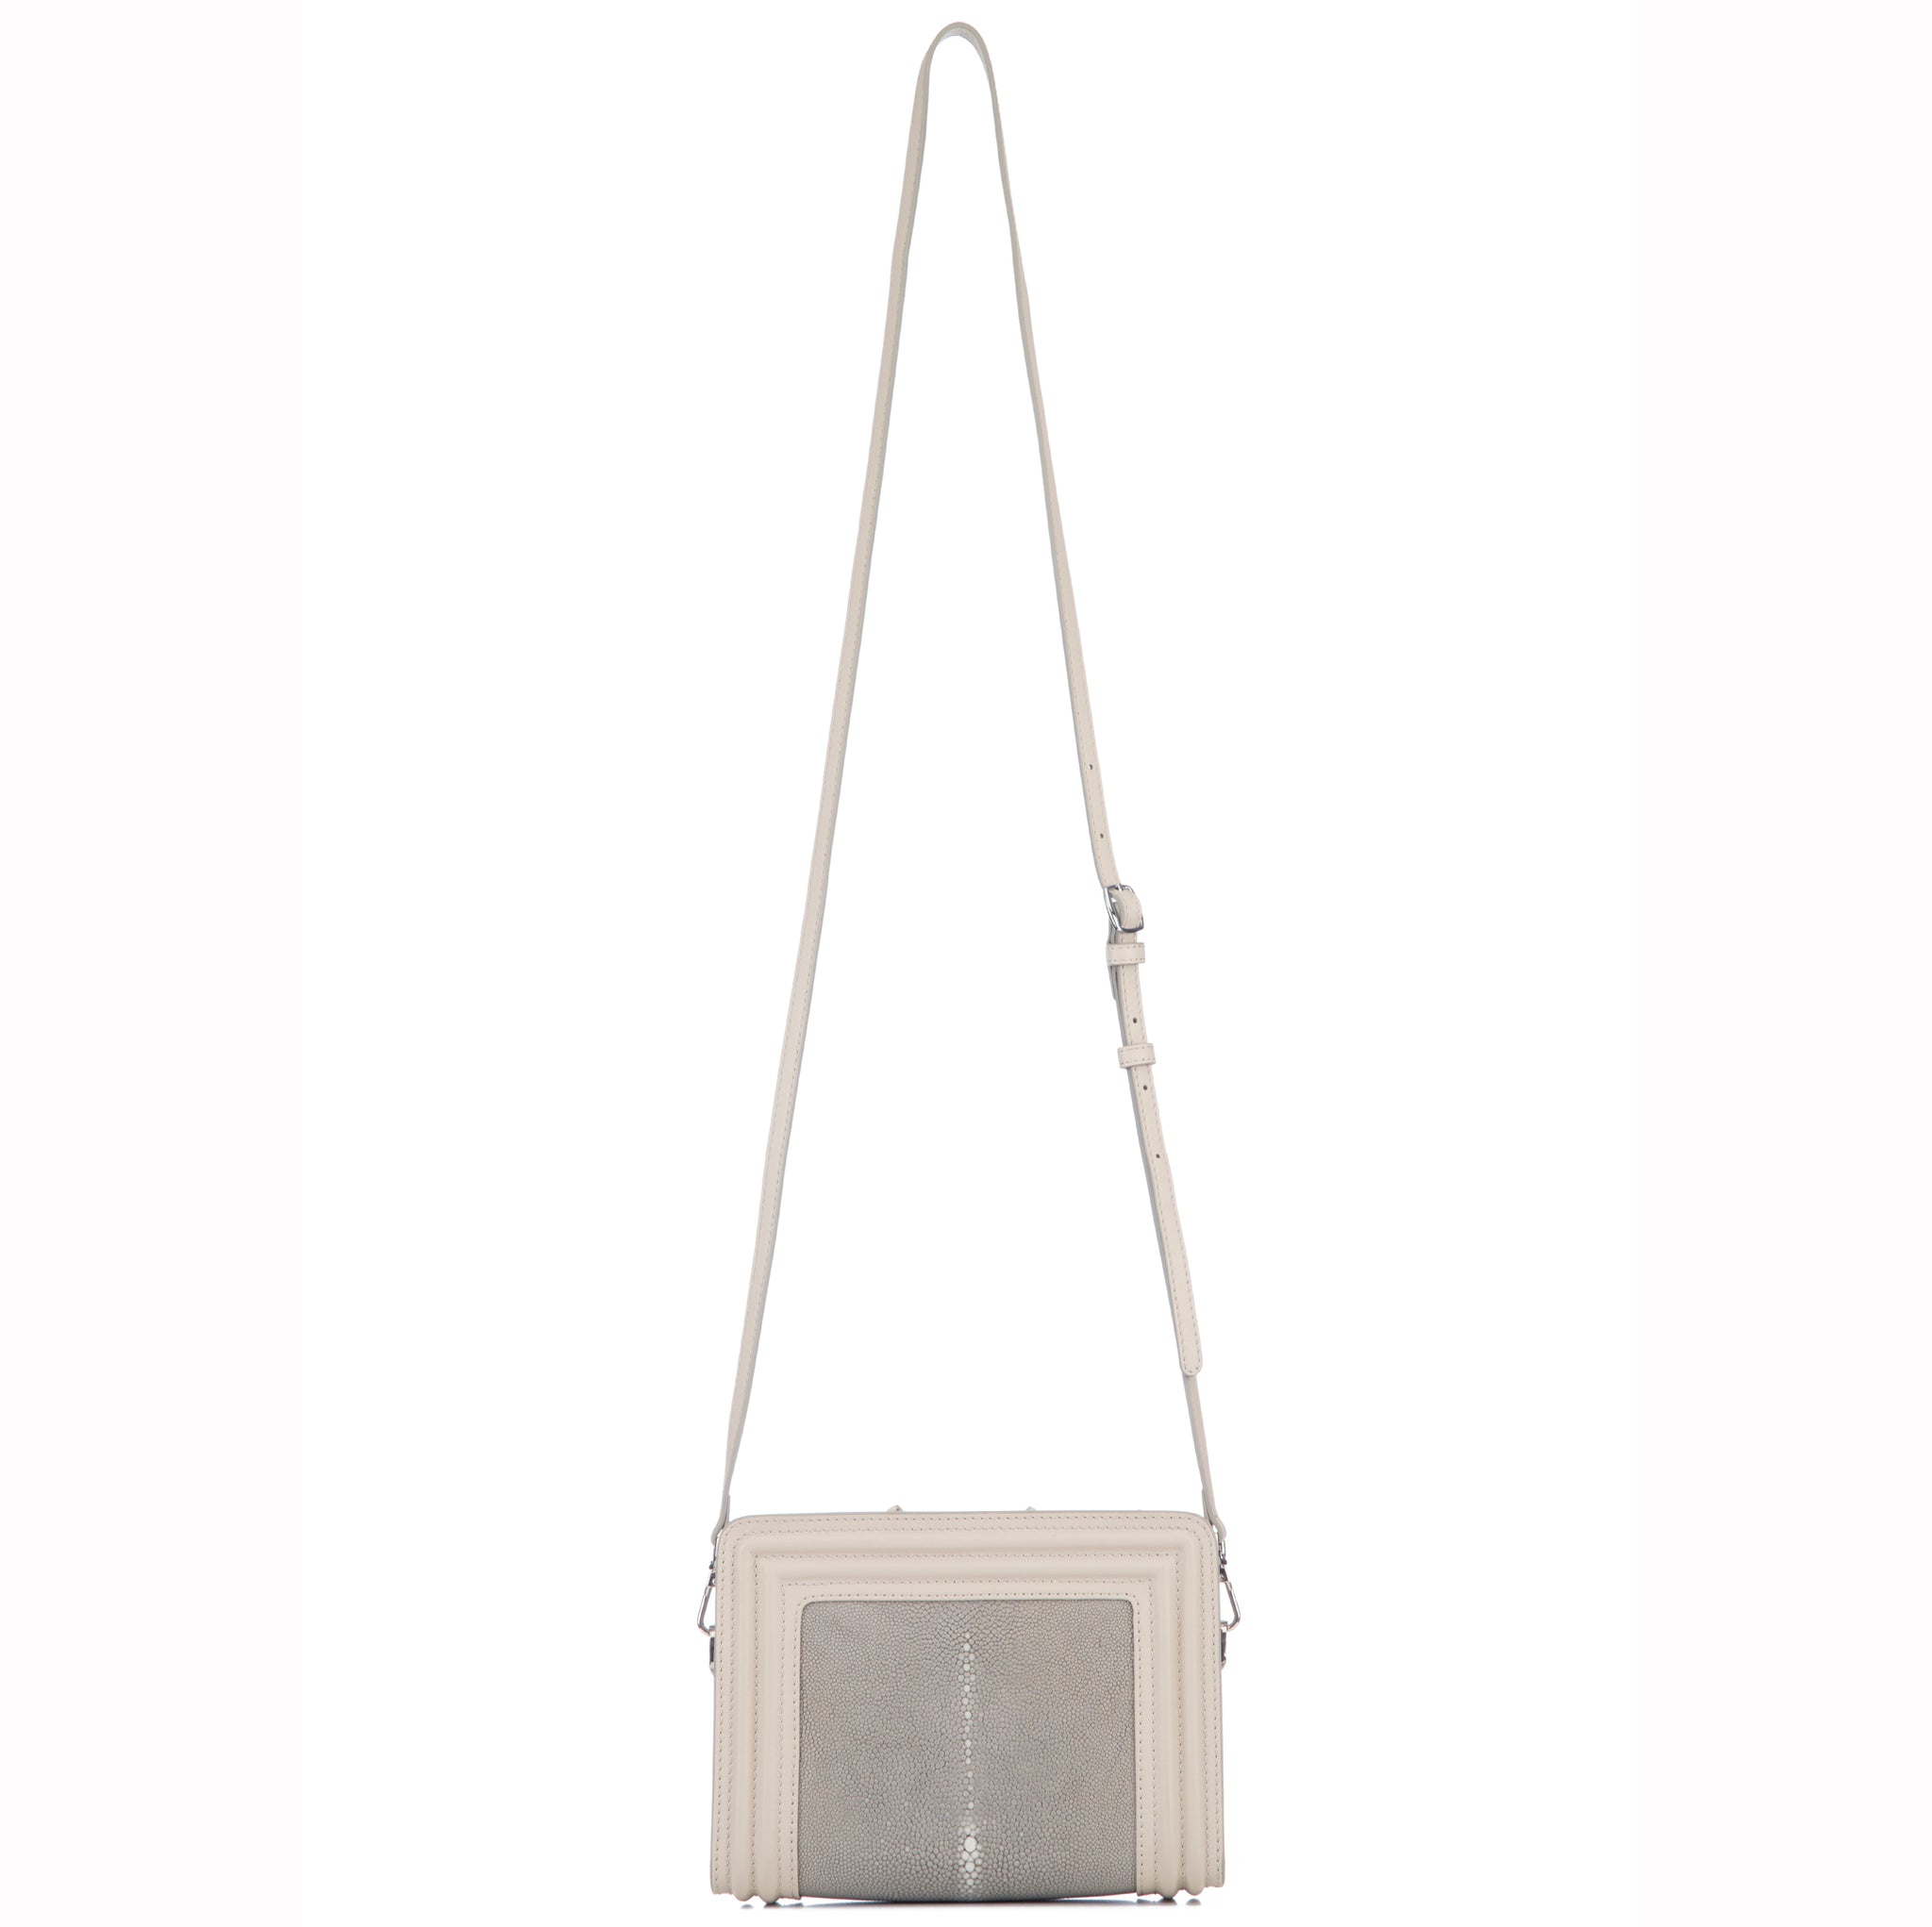 Ecru Corded Leather Frames Cement  Stingray Double Zipper Top Cross Body Bag Shoulder Strap View Nora - Vivo Direct